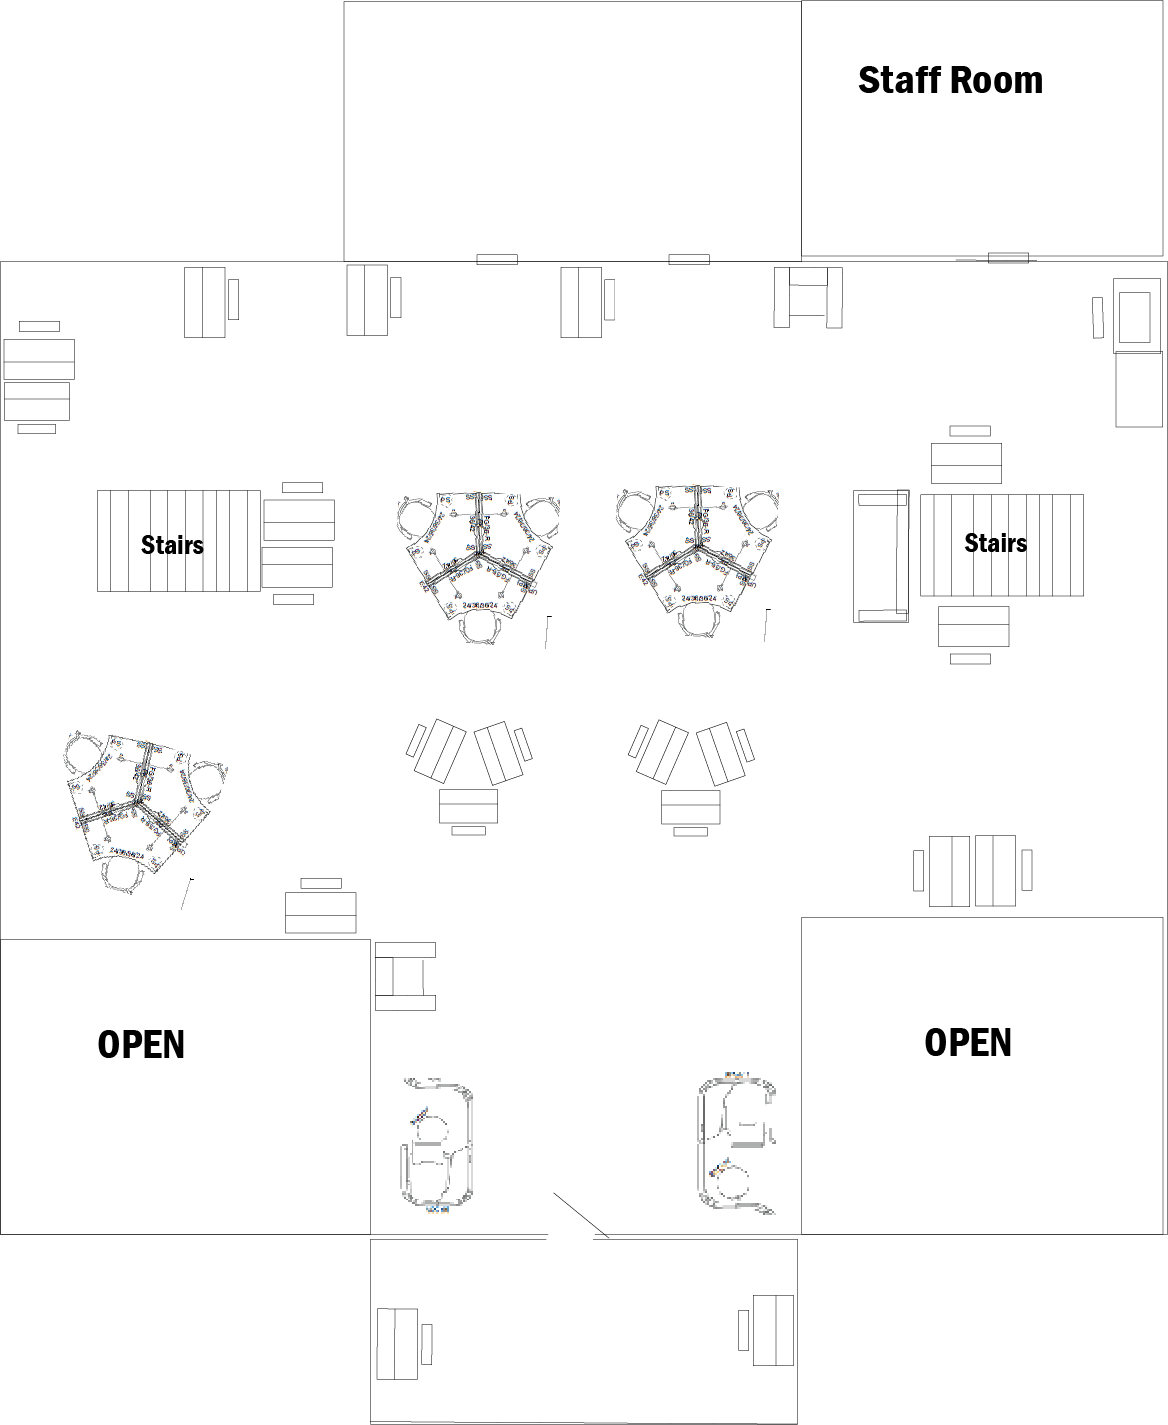 This image illustrates the upstairs layout of Blake Library. Please use the printer-friendly version link for an accessible PDF of this map.